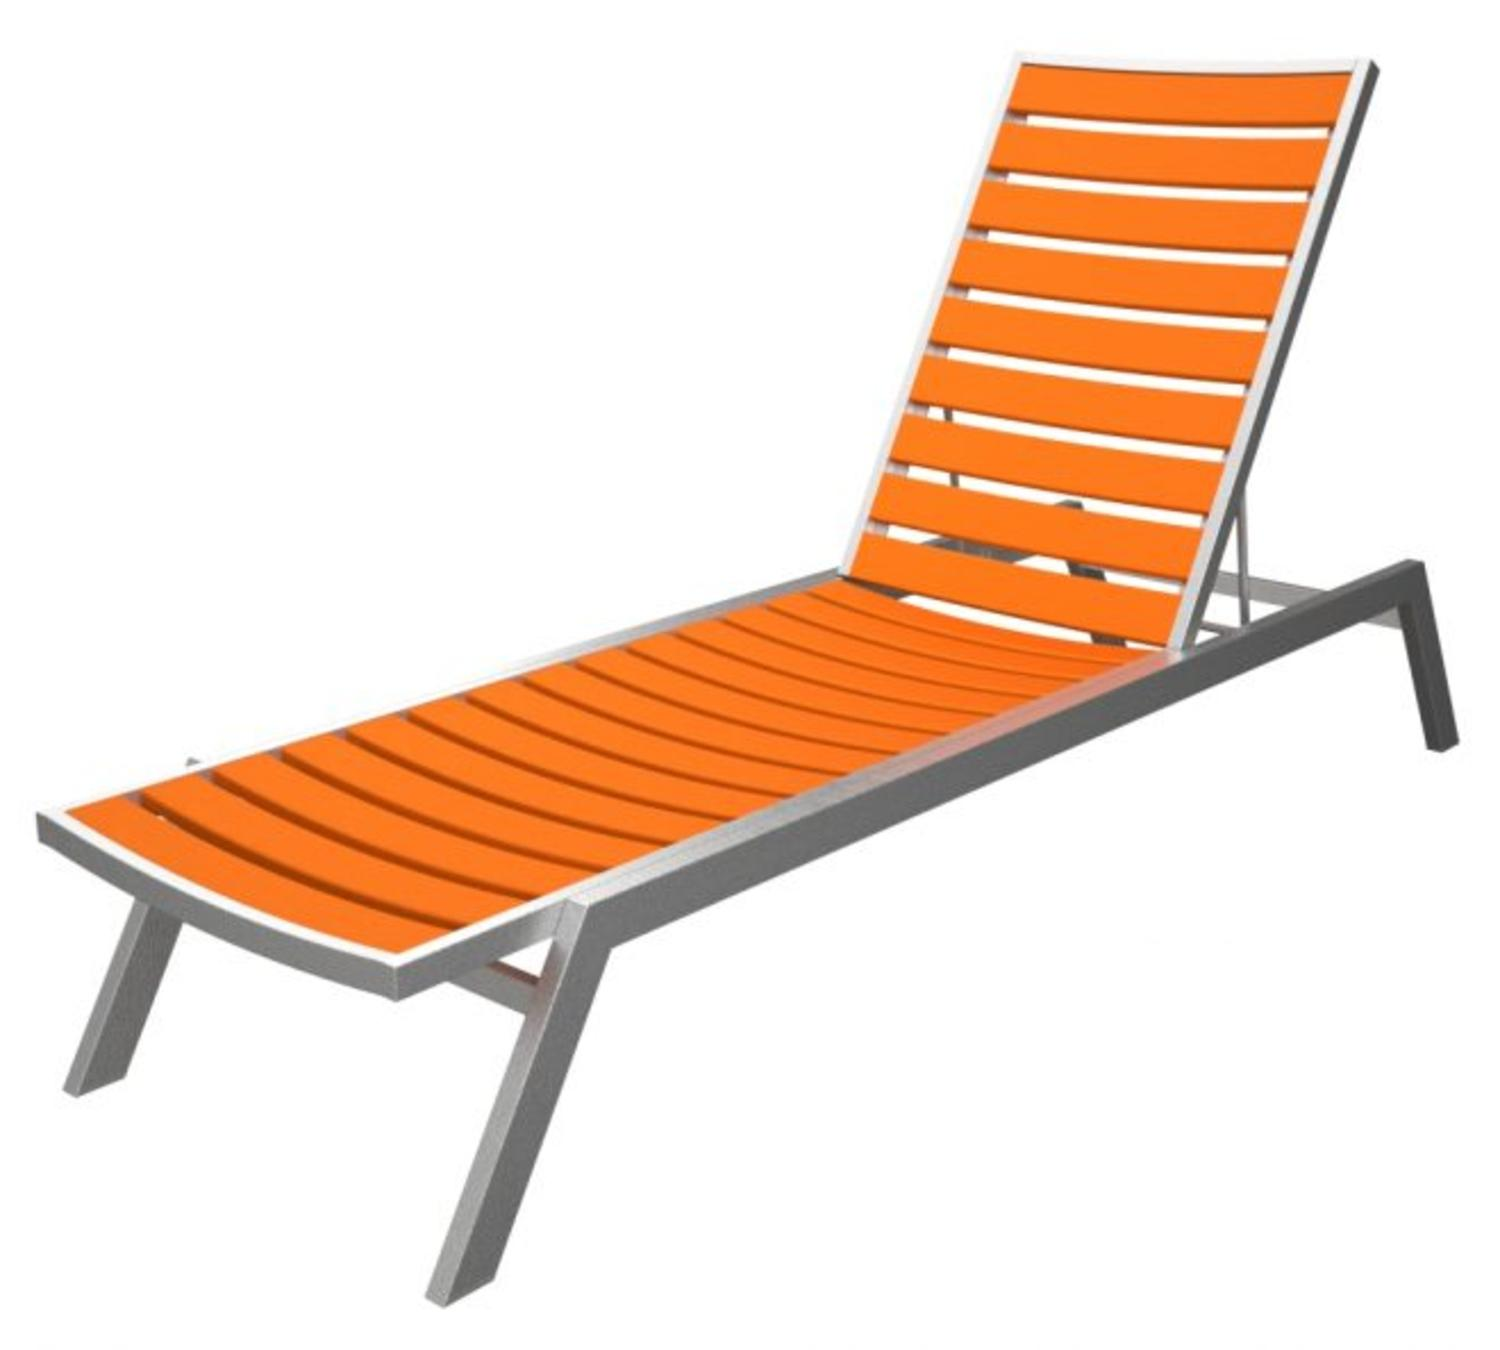 Orange Lounge Chair 78 25 Quot Recycled Earth Friendly Chaise Lounge Chair